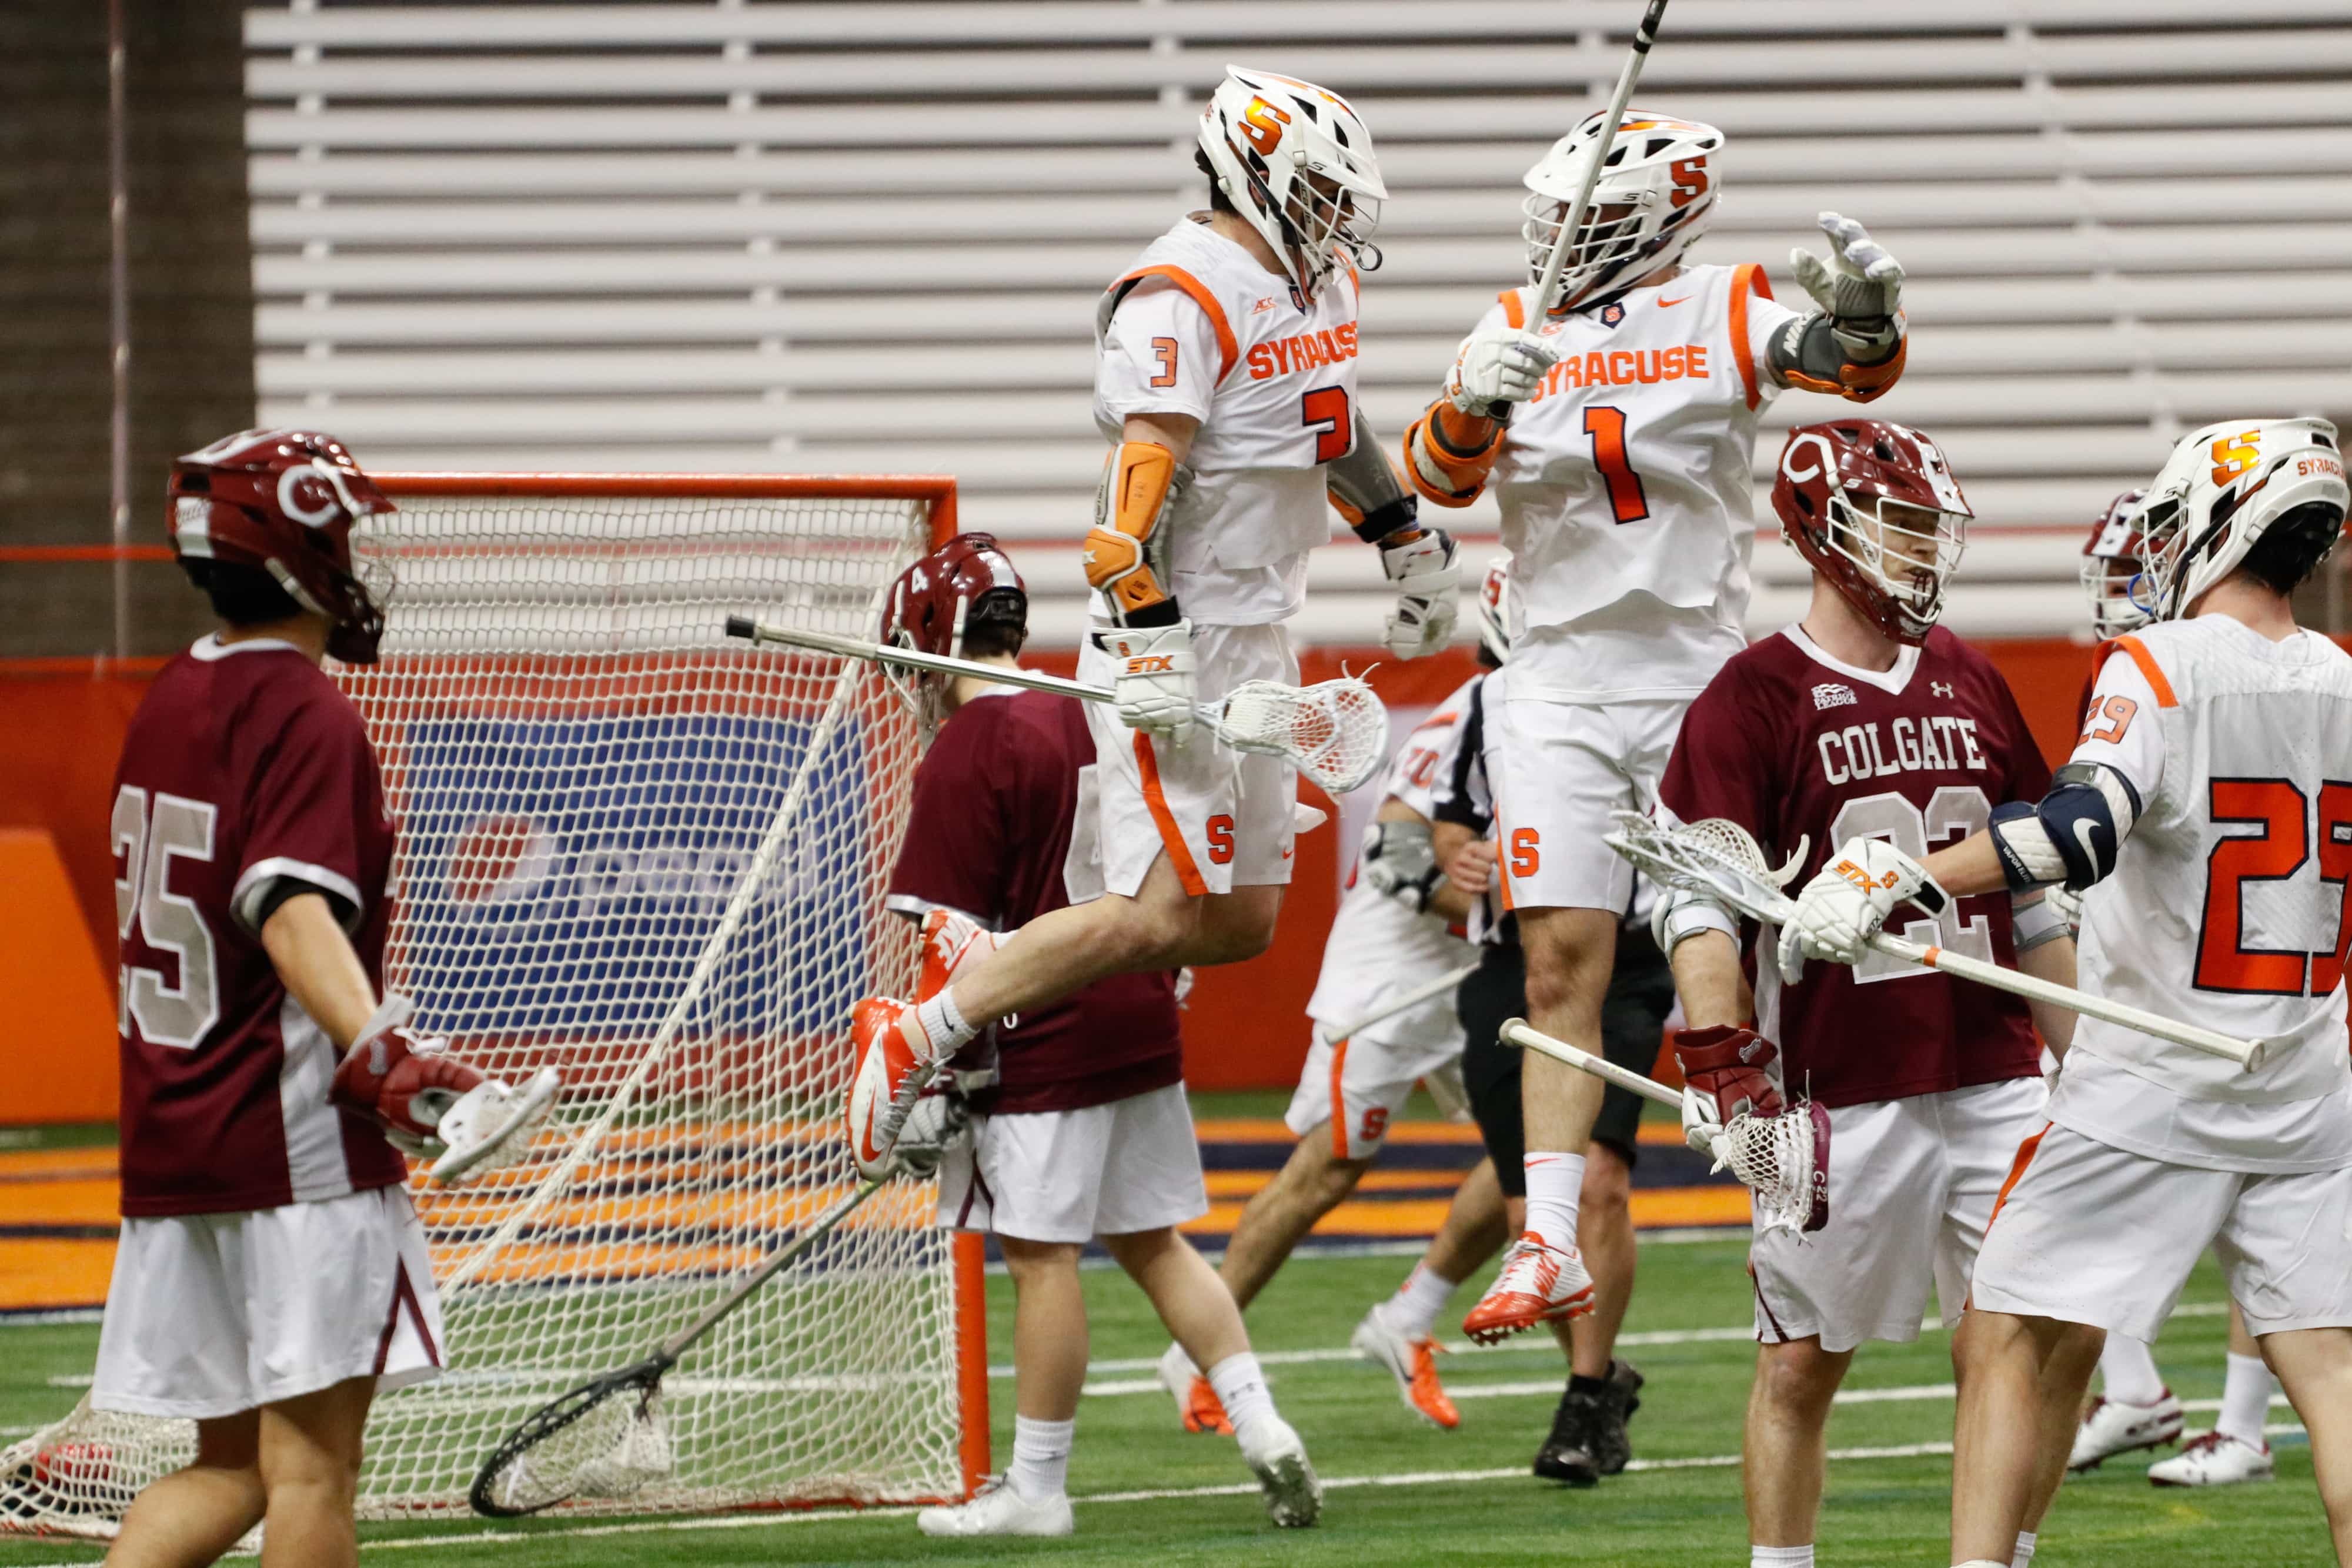 Bradley Voigt and Nate Solomon celebrate after scoring a goal against Colgate in the 2019 season opener in the Carrier Dome.